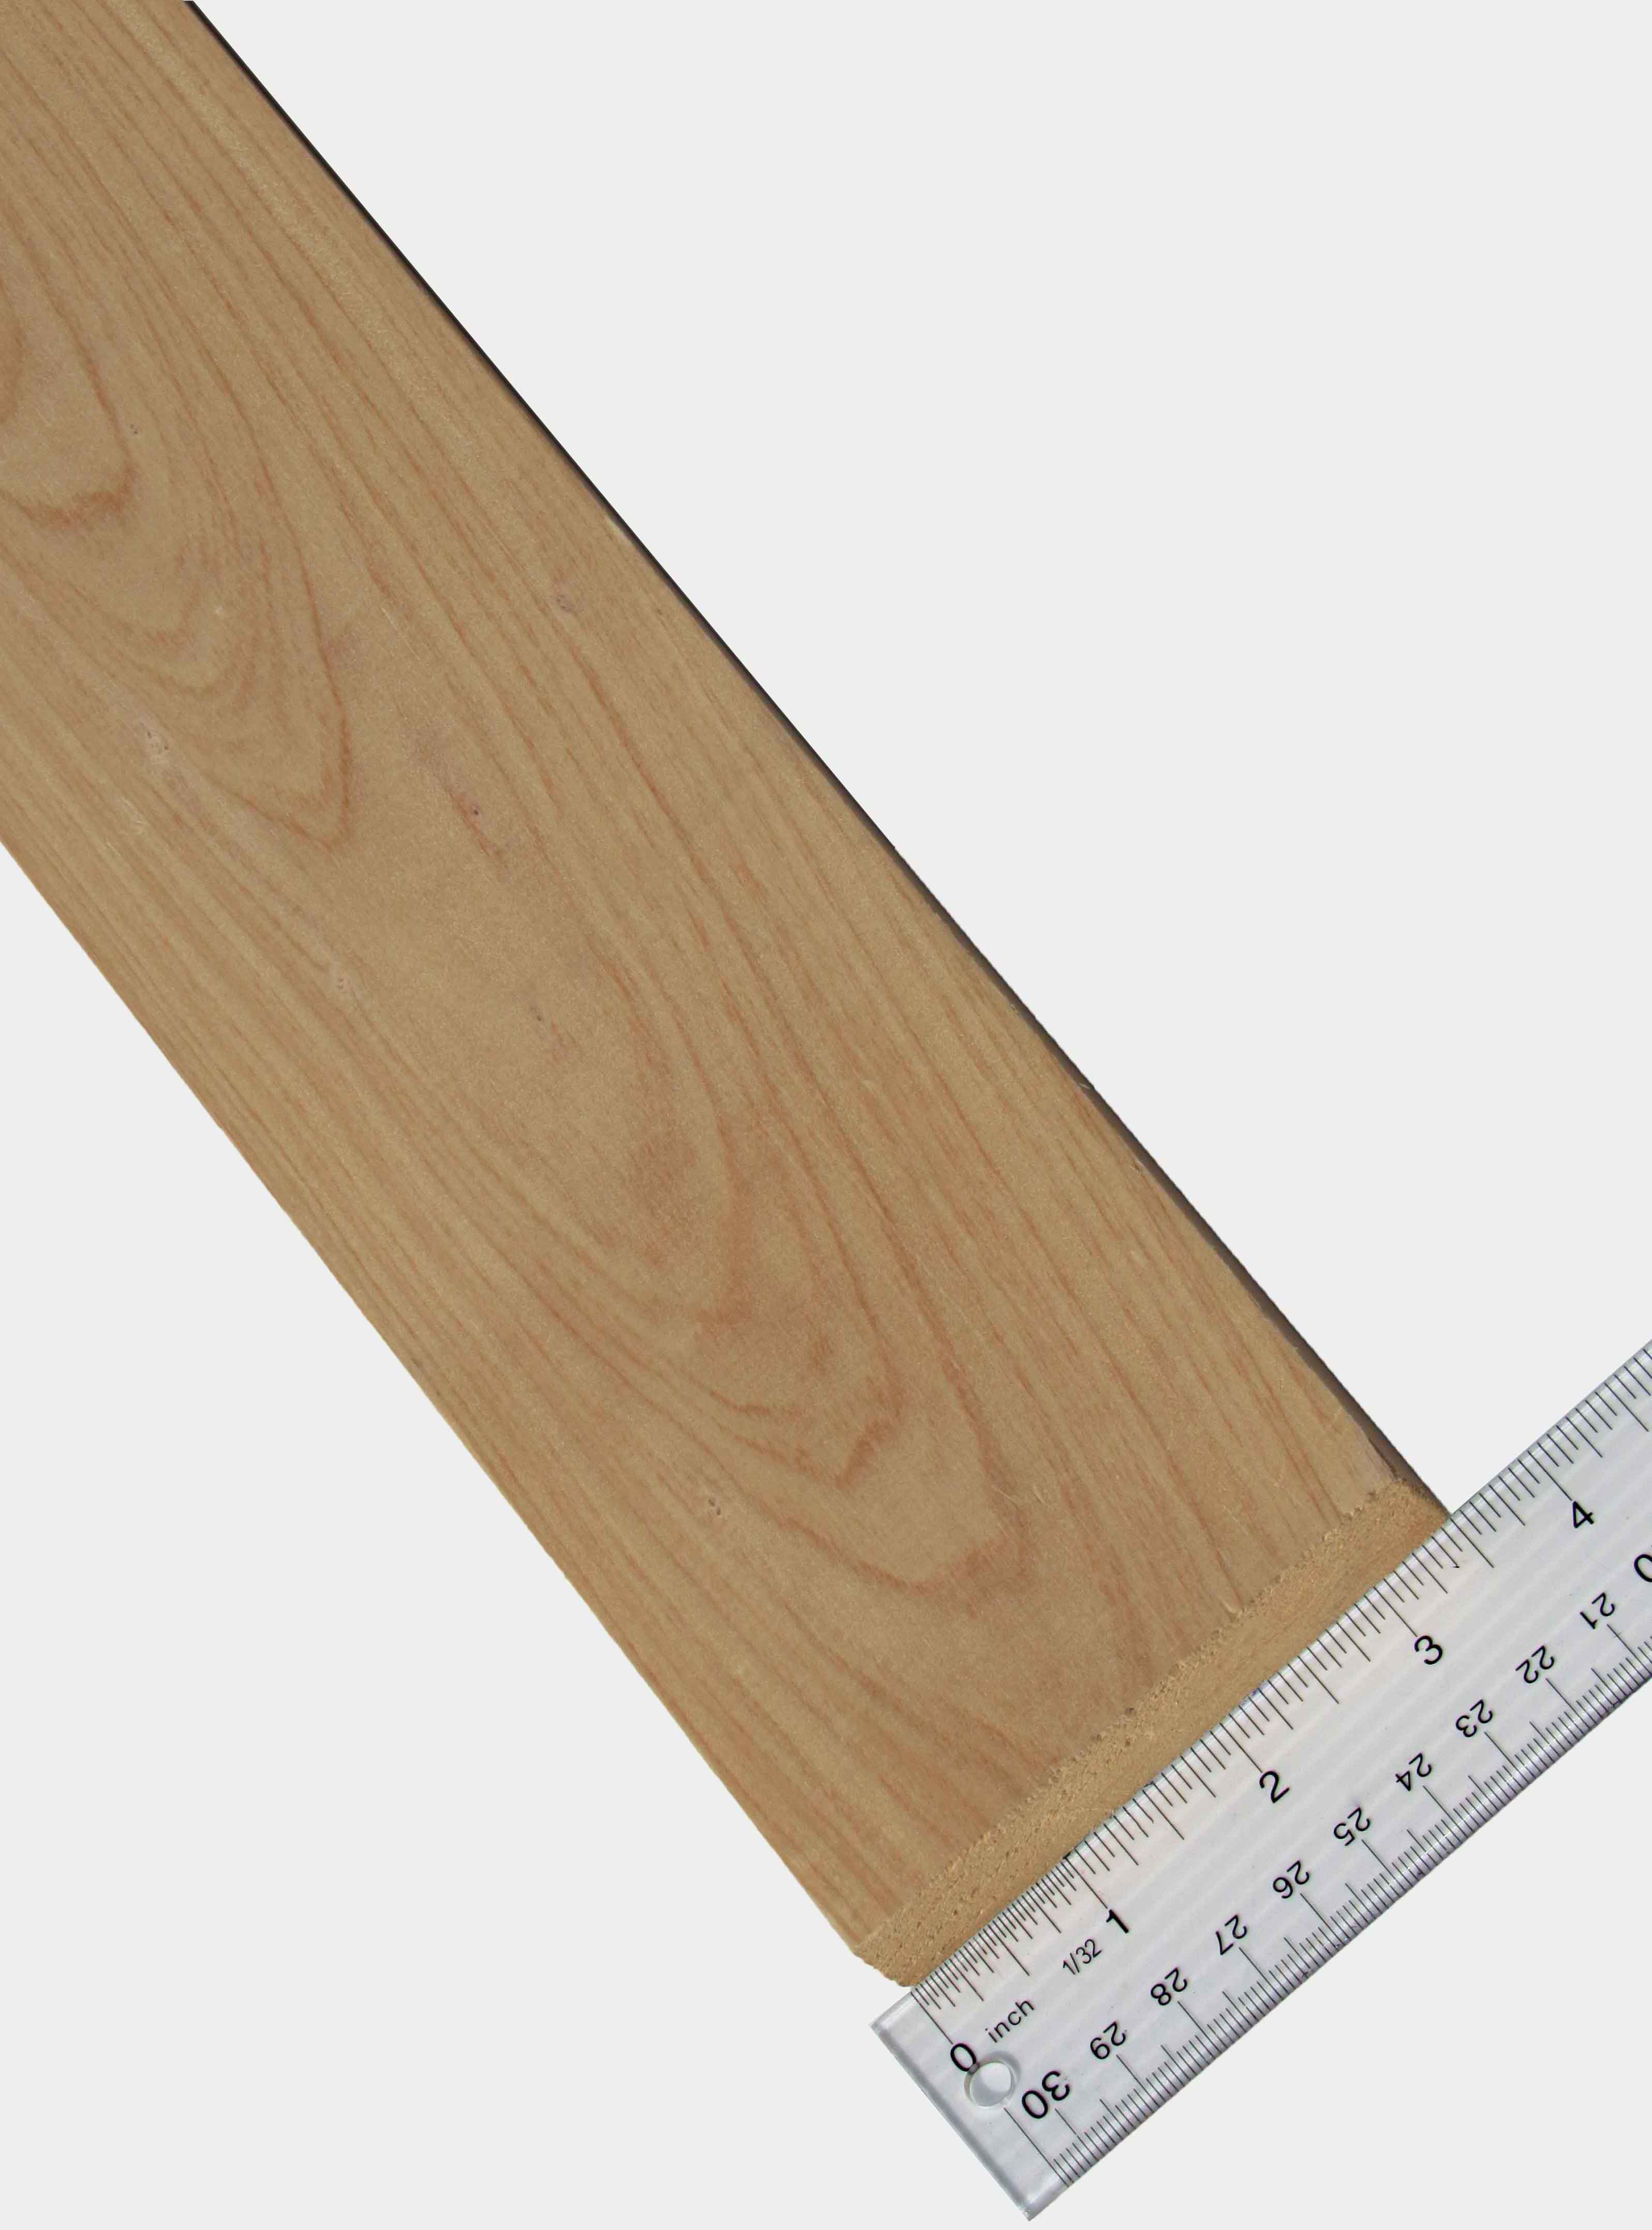 1x4 Clear White Pine Lumber S4s Capitol City Lumber